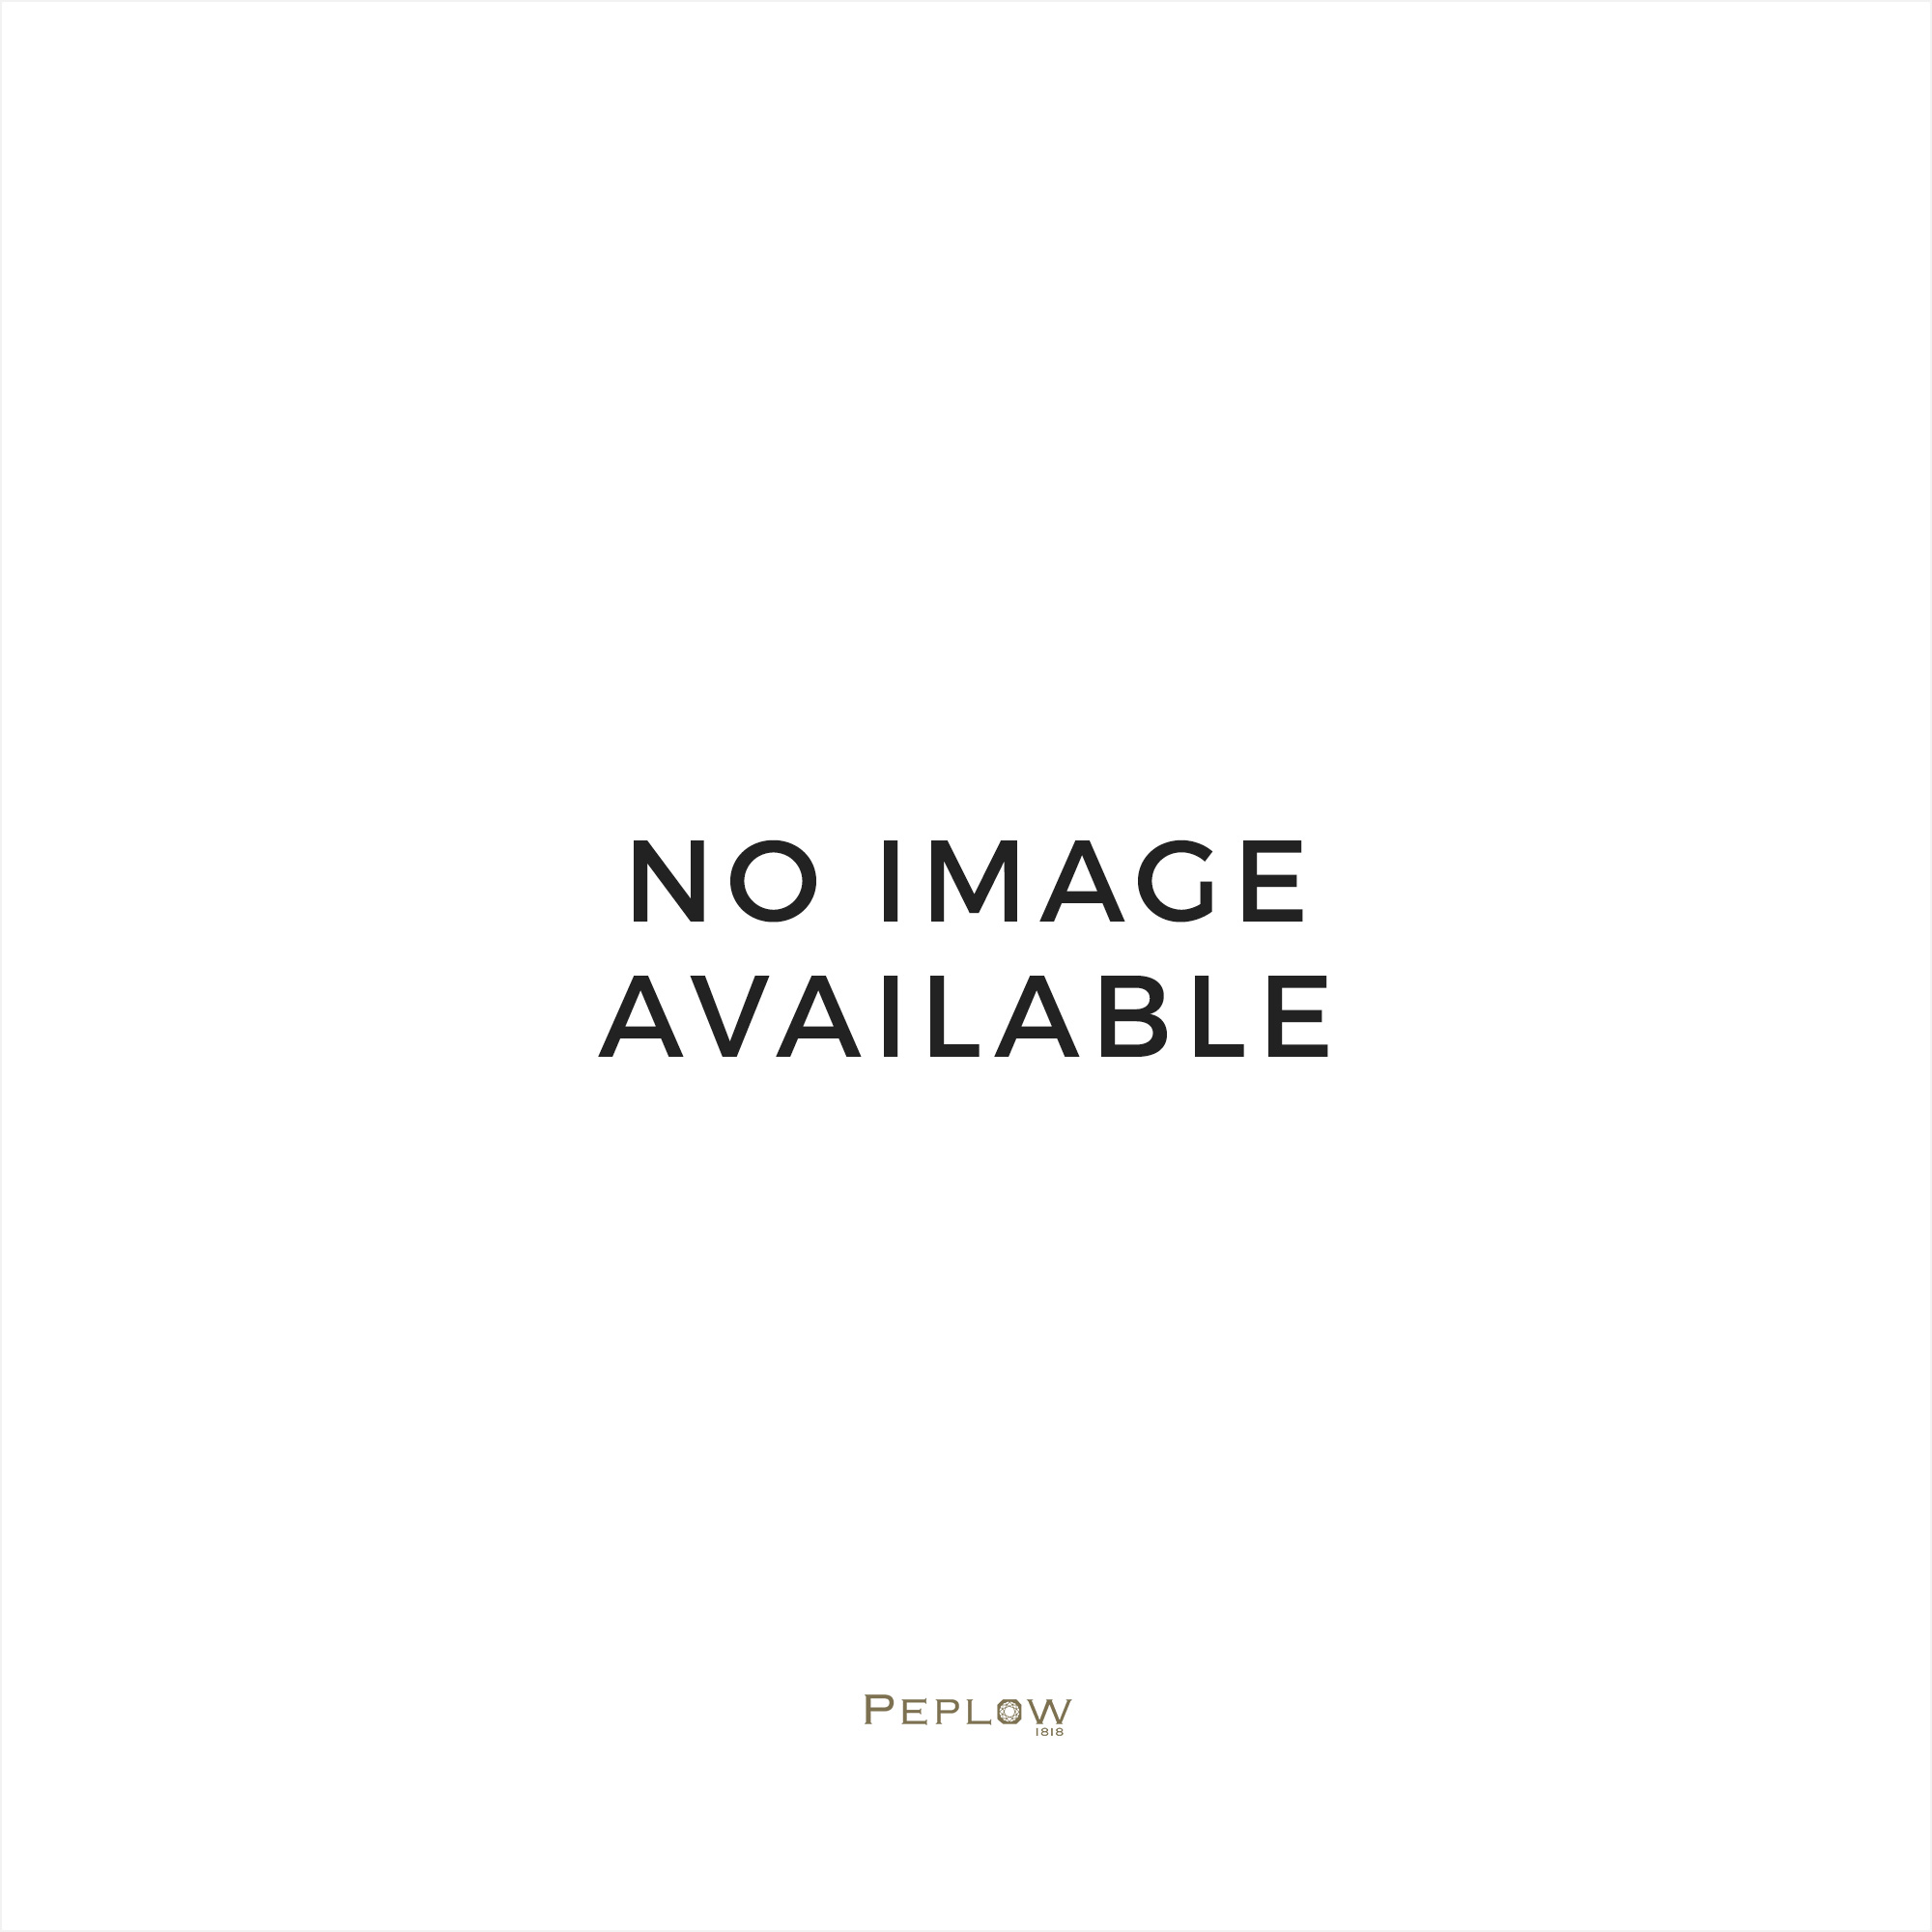 Citizen Watches Citizen Gents Eco Drive Stainless Steel Watch